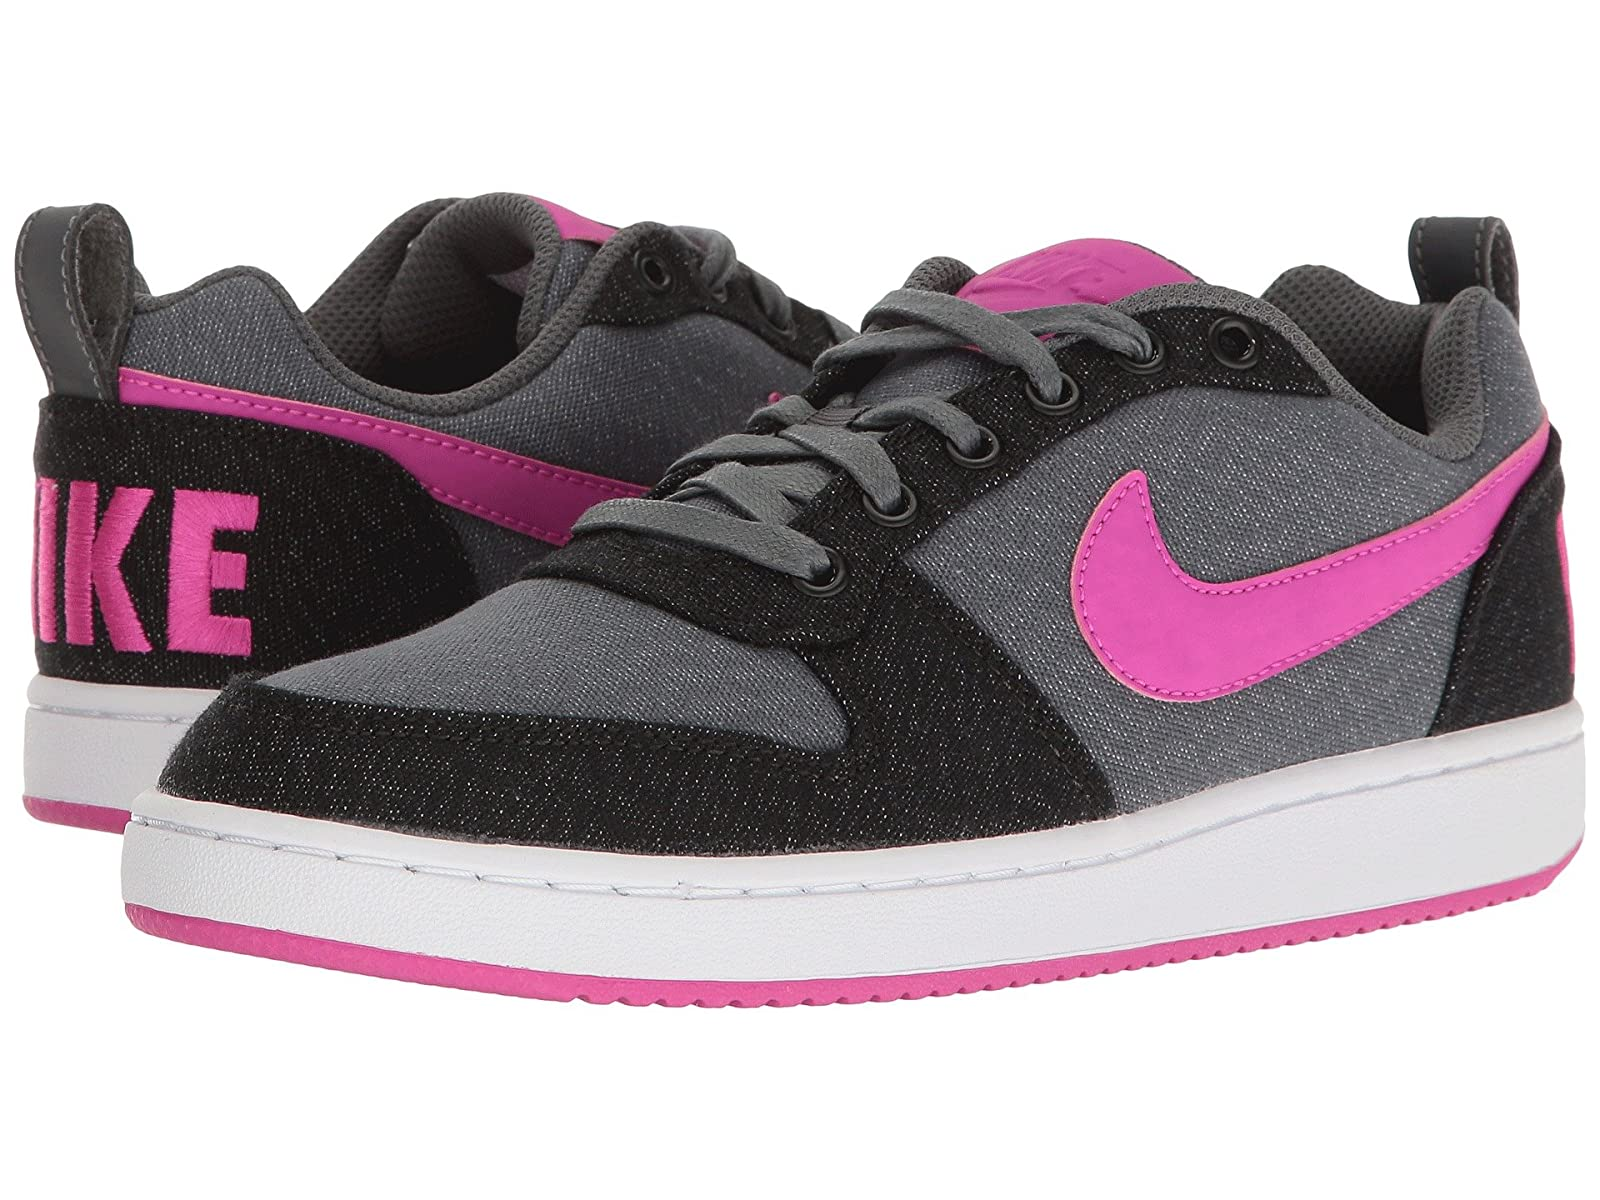 Gentlemen/Ladies Low - Nike Court Borough Low Gentlemen/Ladies Premium  - bestseller b7cef1